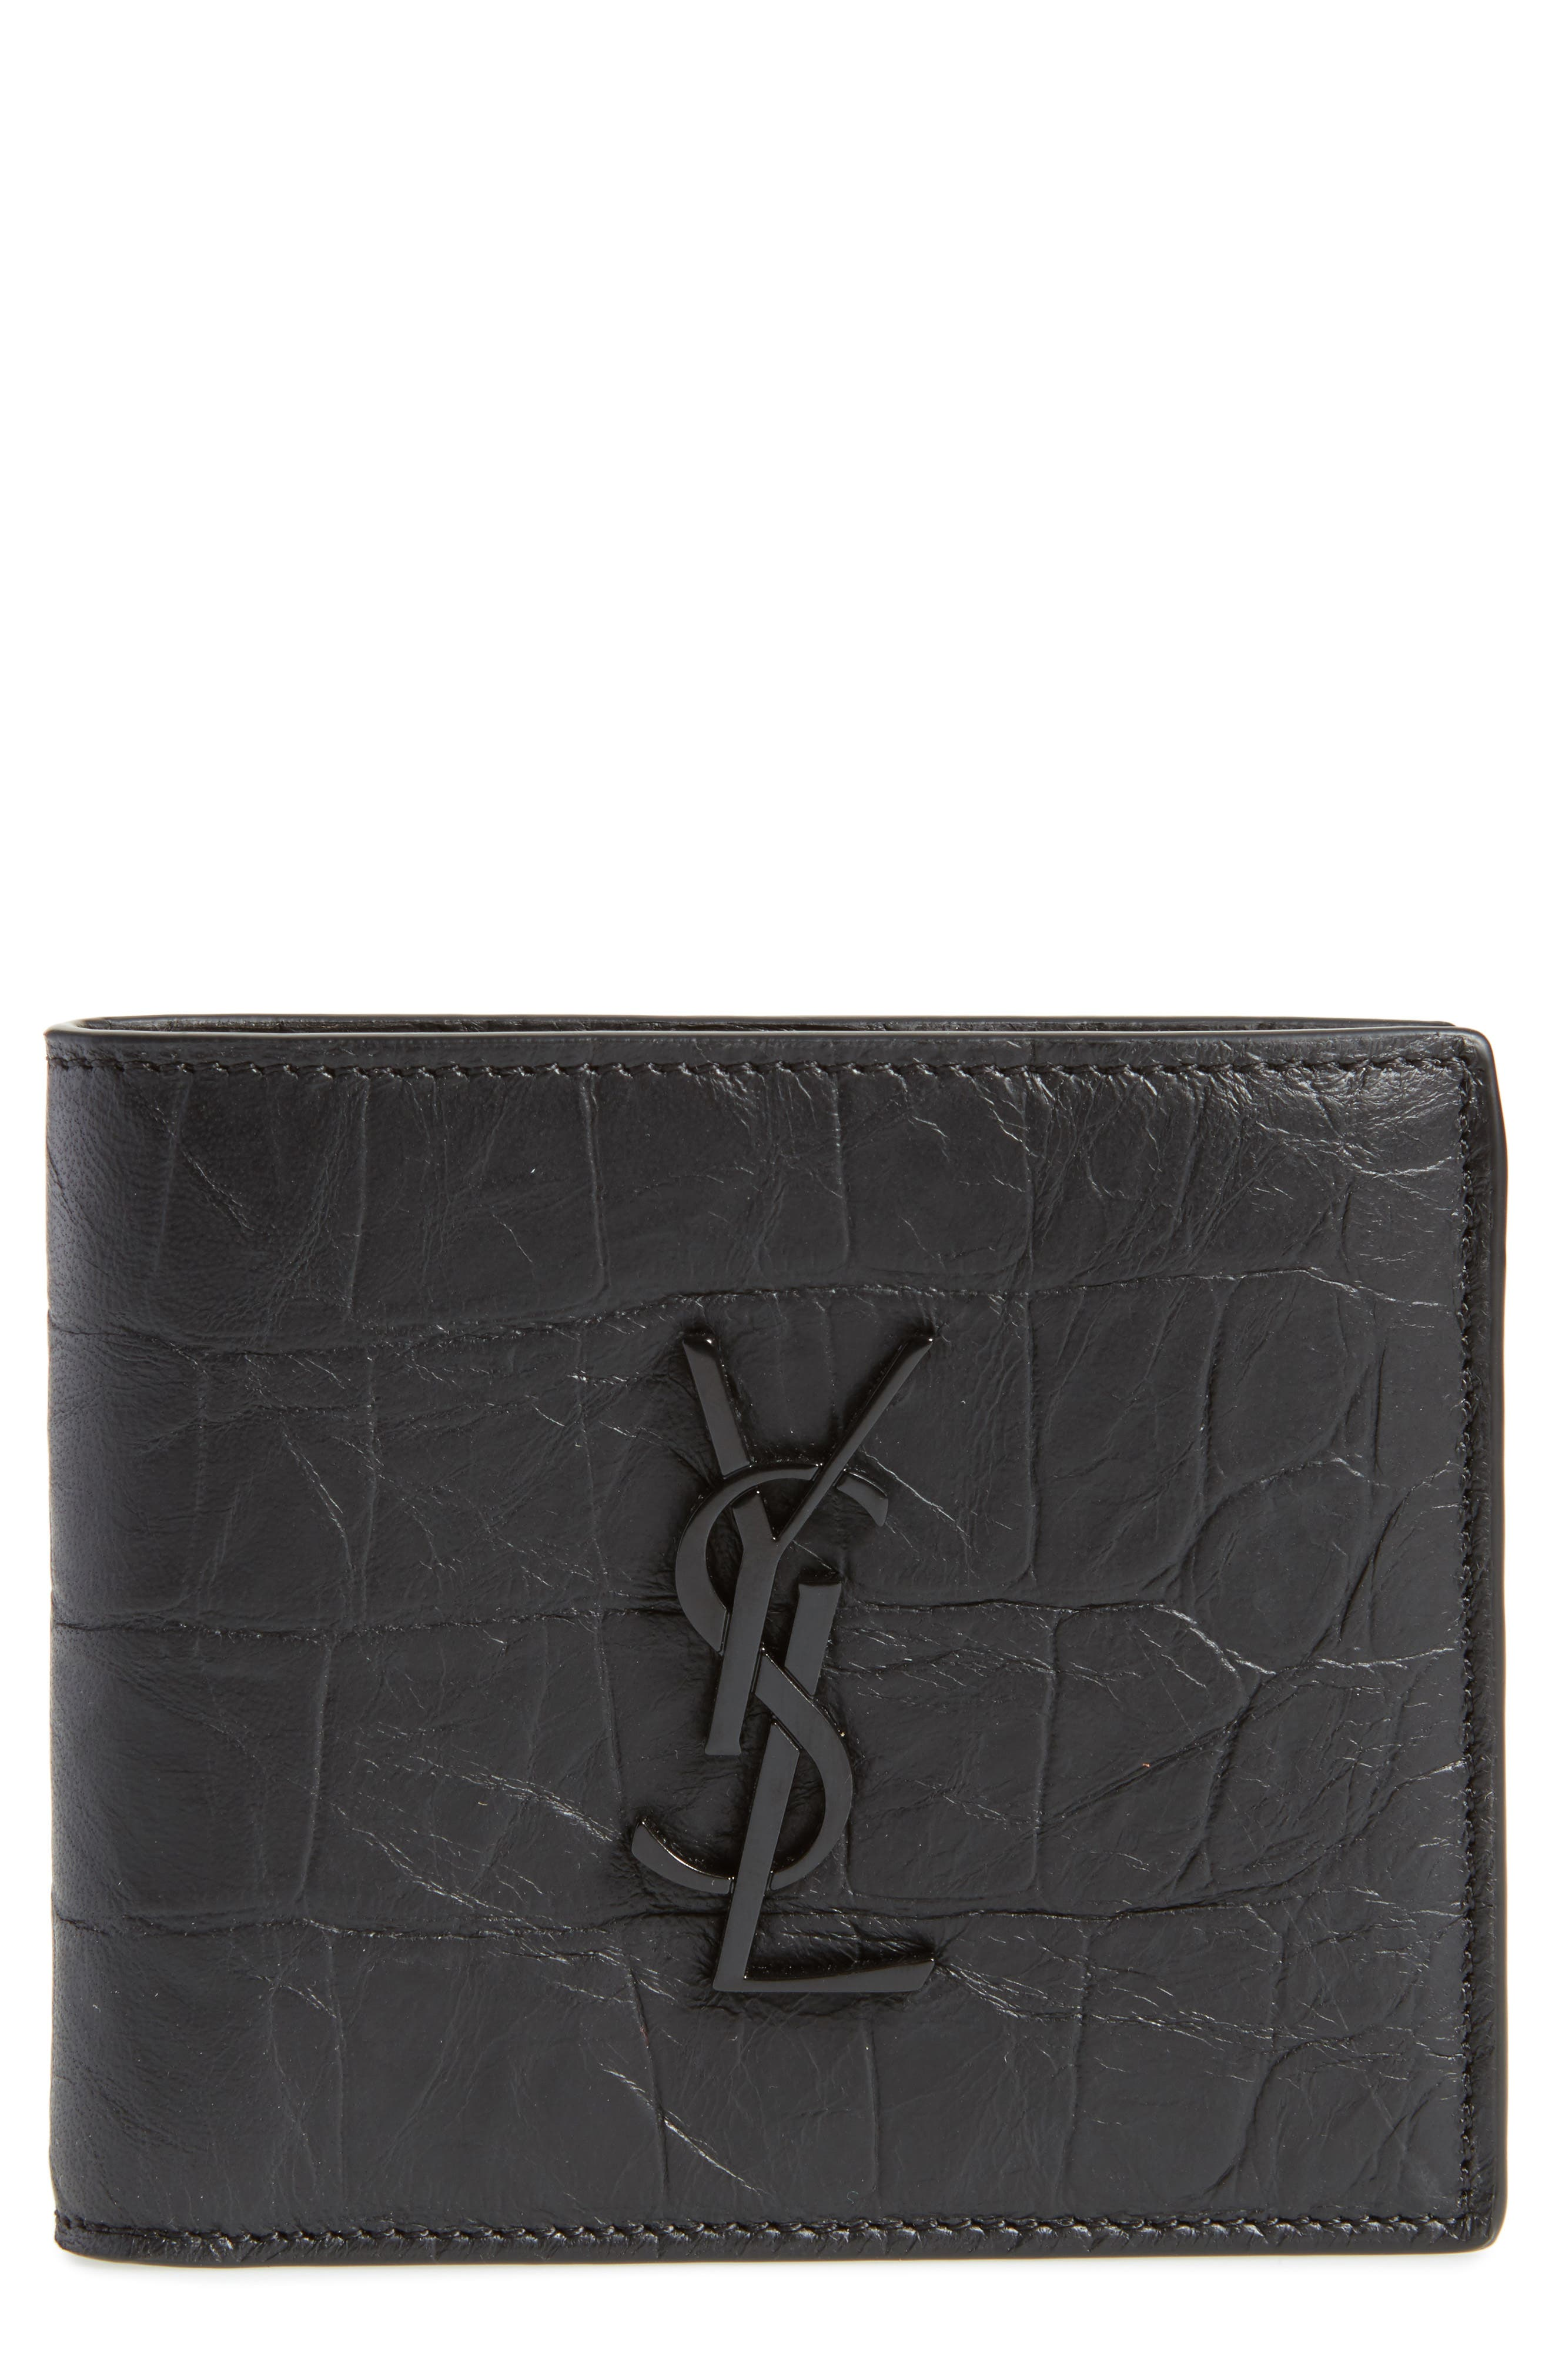 Croc Embossed Leather Wallet,                             Main thumbnail 1, color,                             001